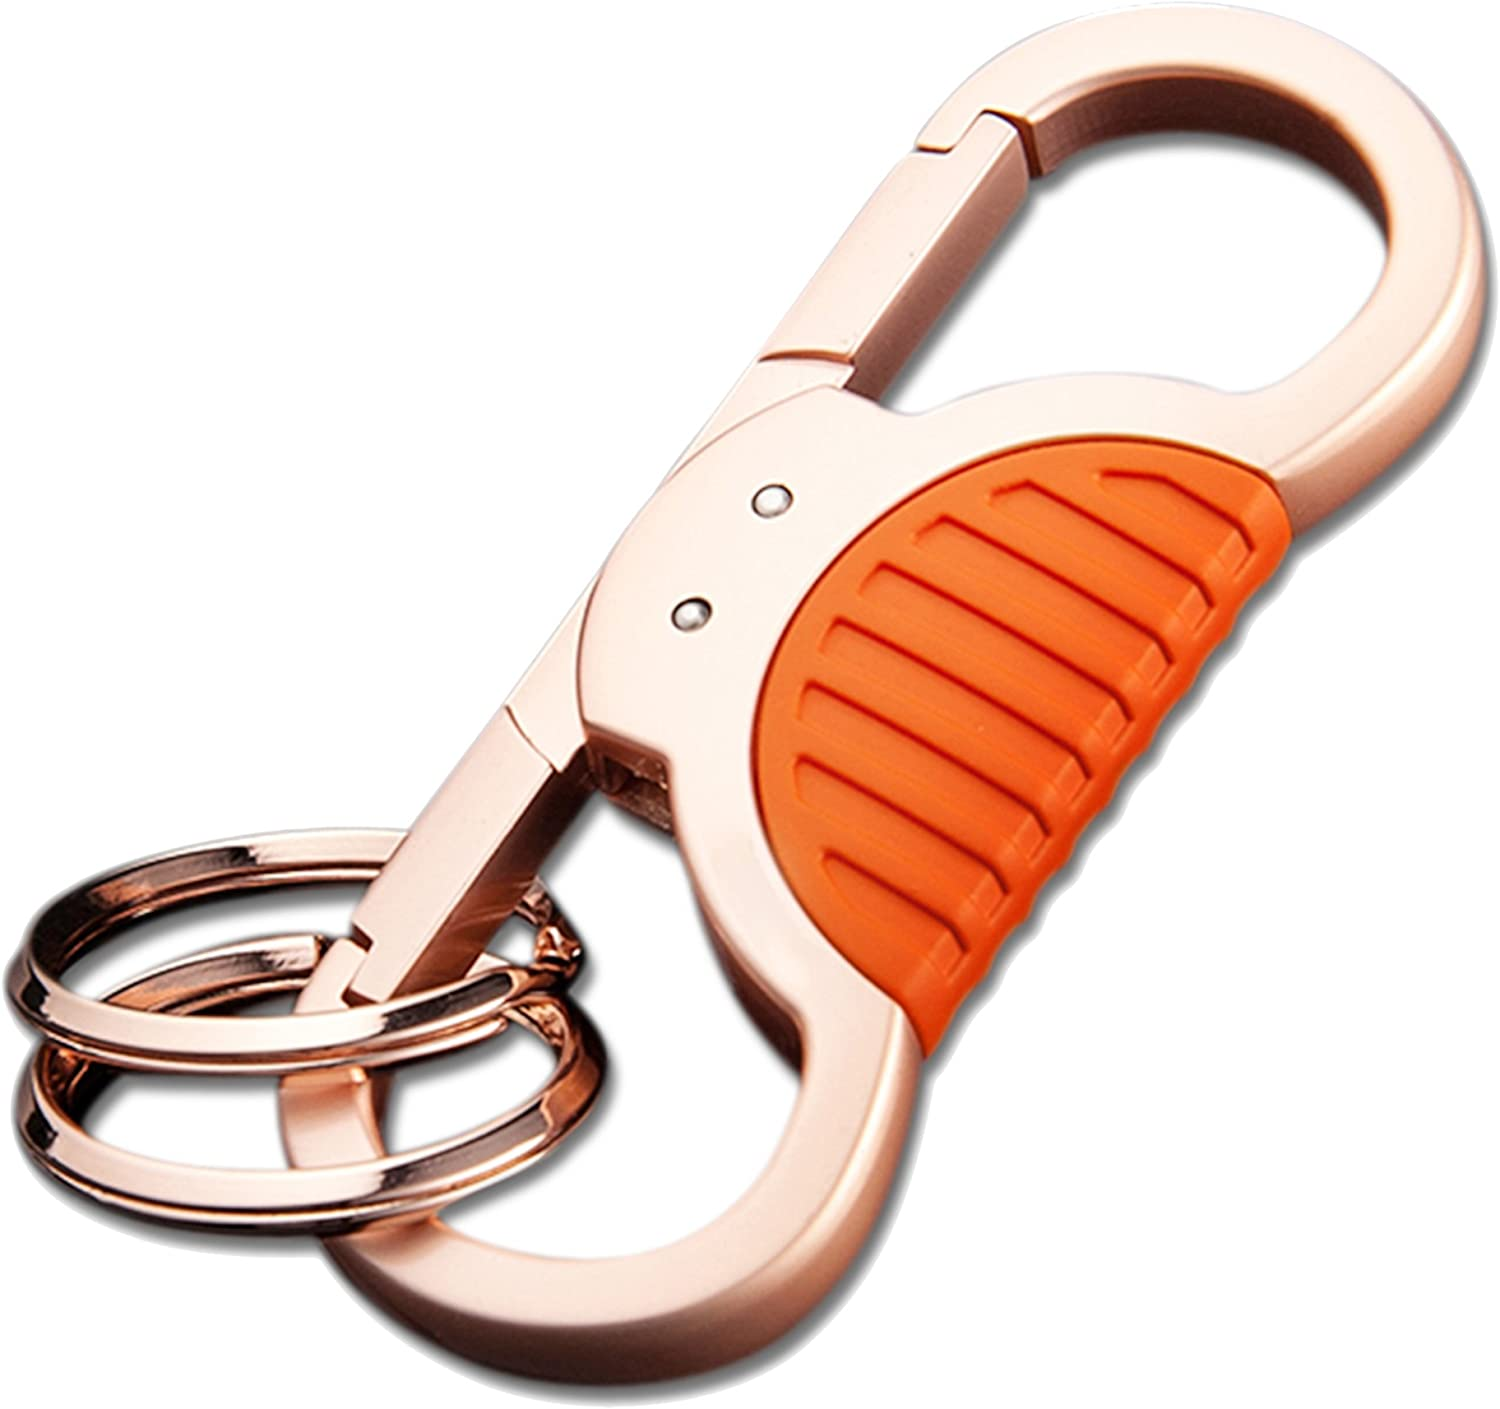 B06XYVVZVL OLIVERY Stainless Steel Keychain, Will Never Rust, Bend or Break! Built by Kühn 71qLL58YiDL